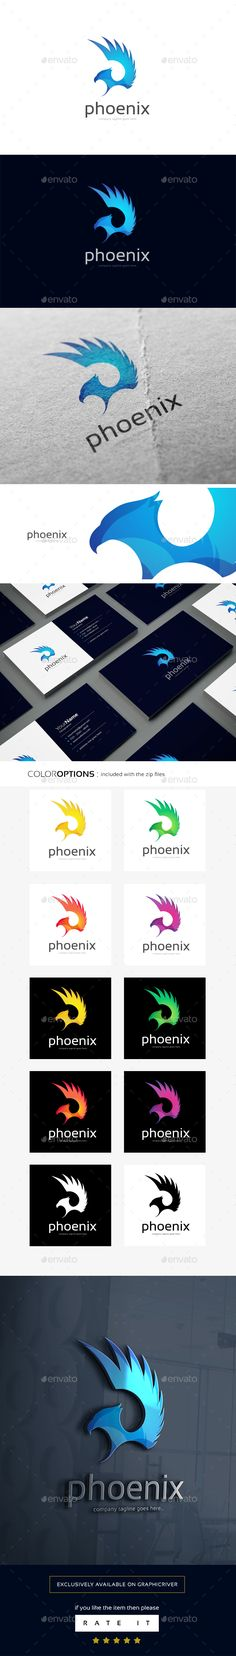 Phoenix Logo Template — Vector EPS #clean #innovation • Available here → https://graphicriver.net/item/phoenix-logo-template/16496609?ref=pxcr